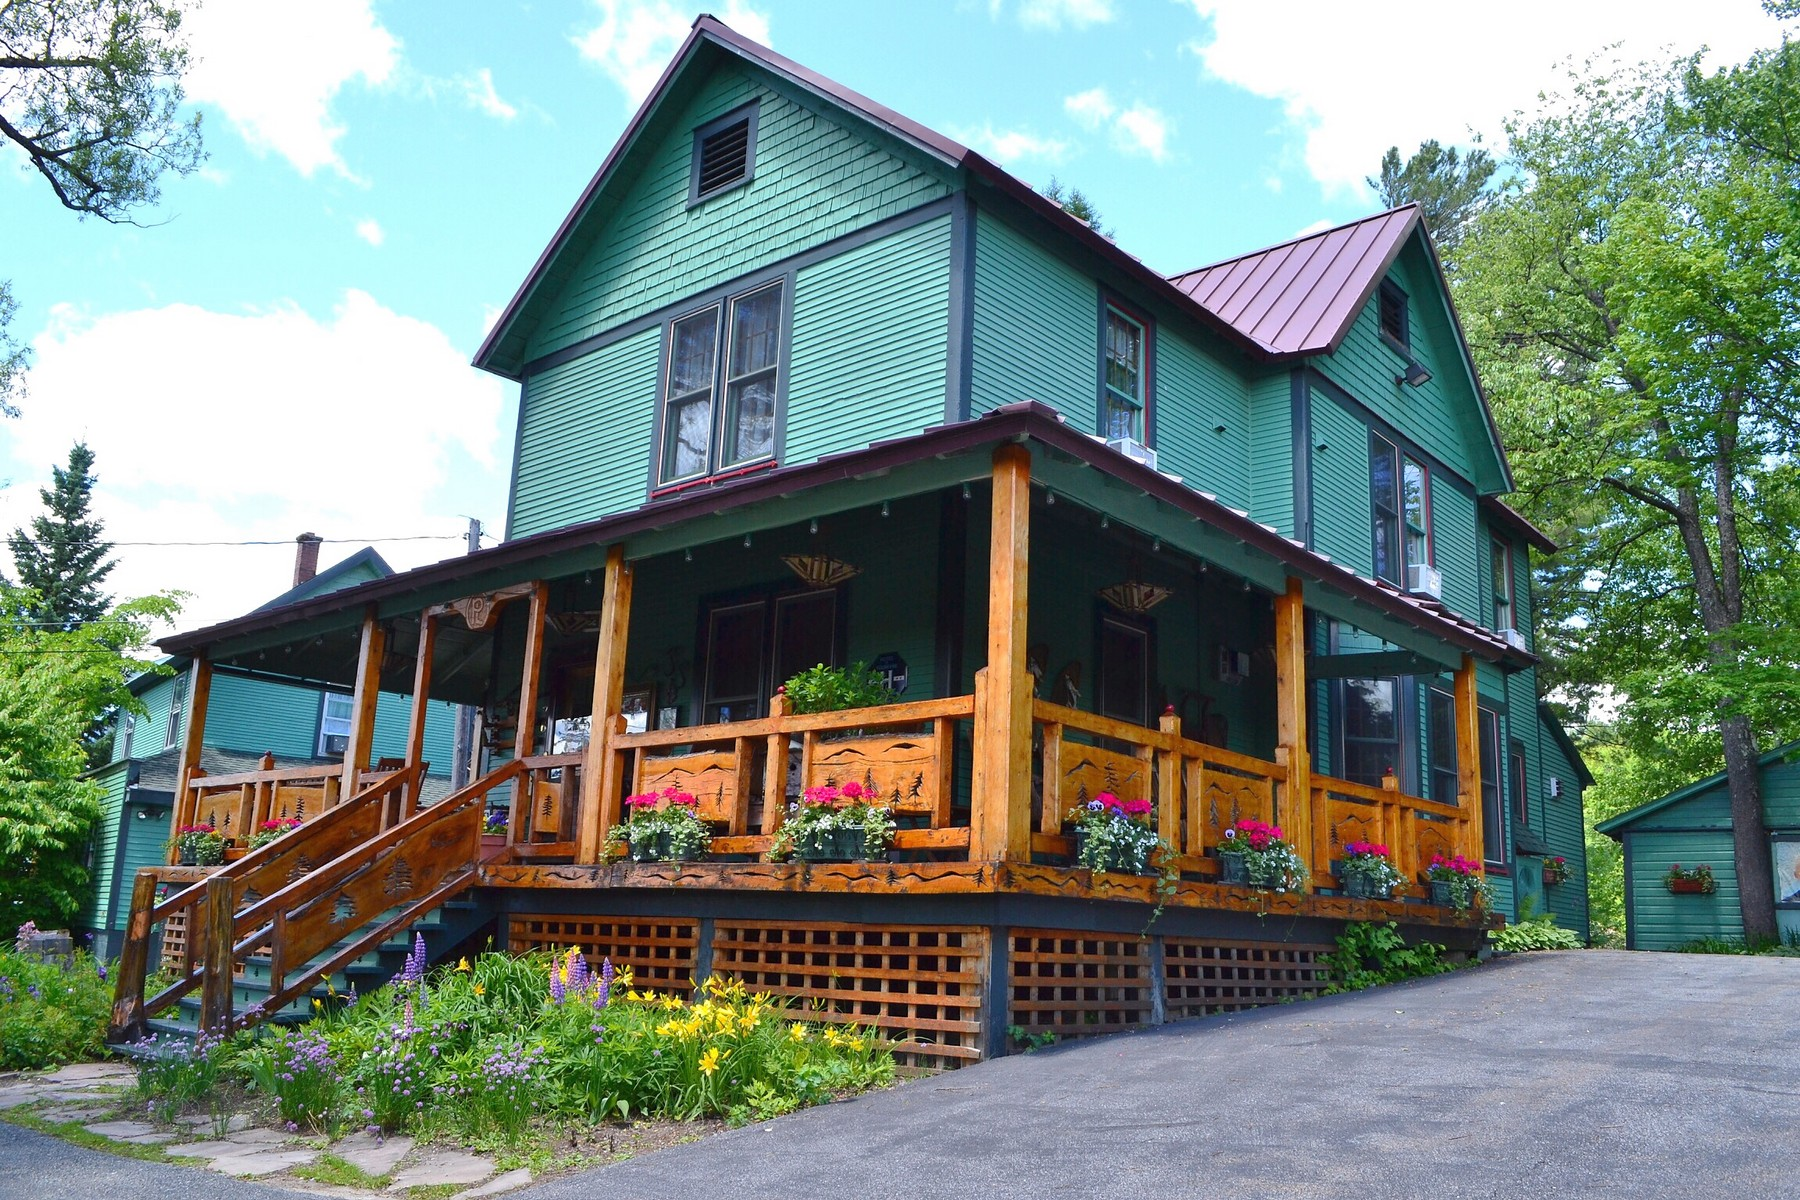 Villa per Vendita alle ore Lake Placid Waterfront 2169 Saranac Avenue, Lake Placid, New York, 12946 Stati Uniti